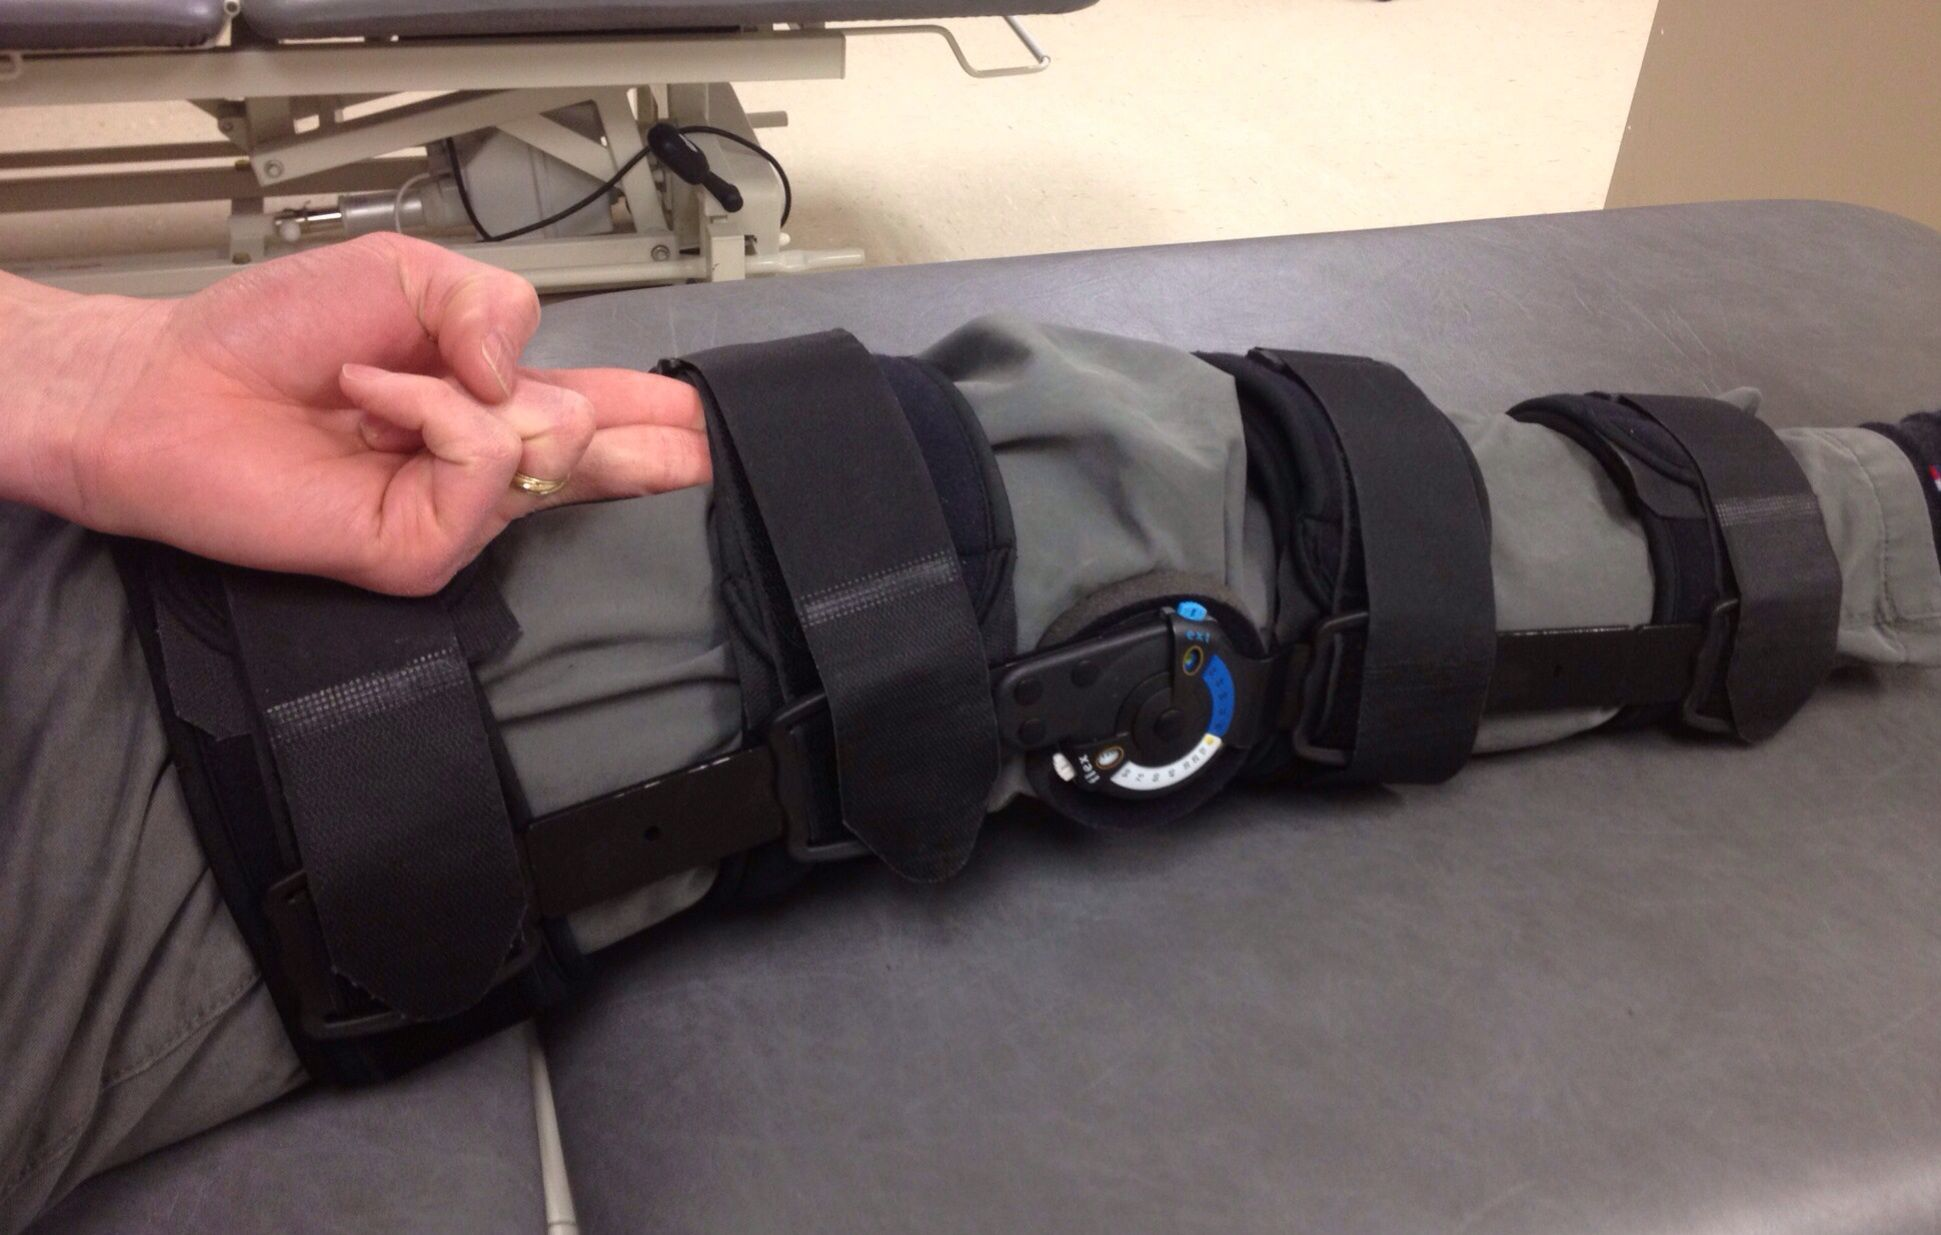 How To Wear A Knee Brace So It Fits Correctly